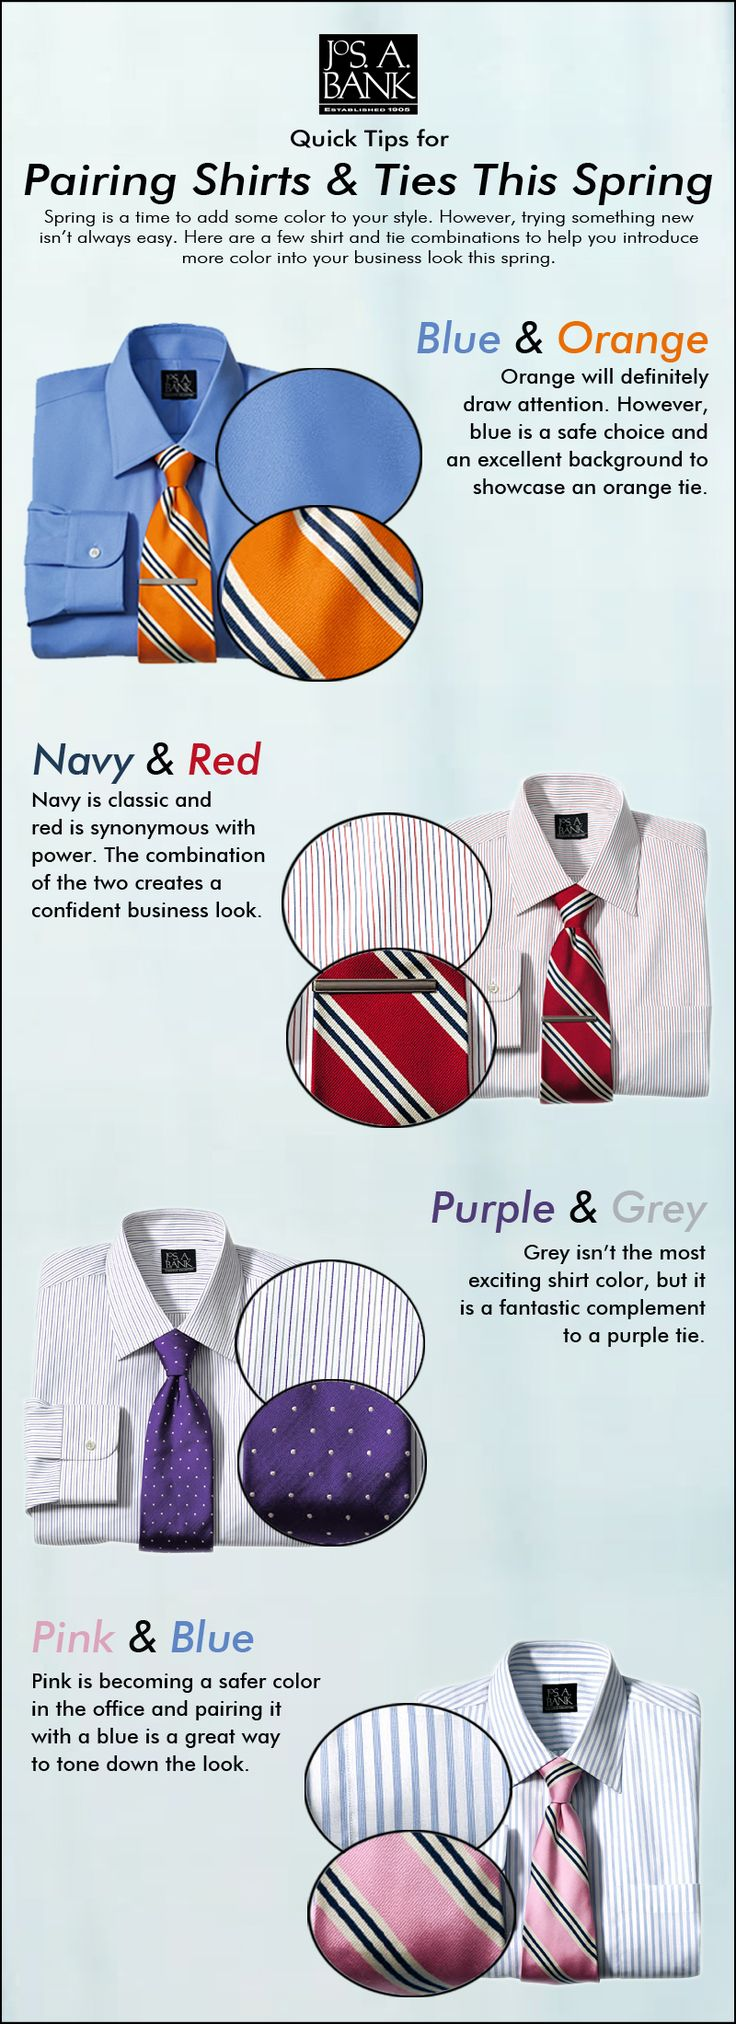 A few ideas to help you add color #tipographic #menstyle #infographic #menswear